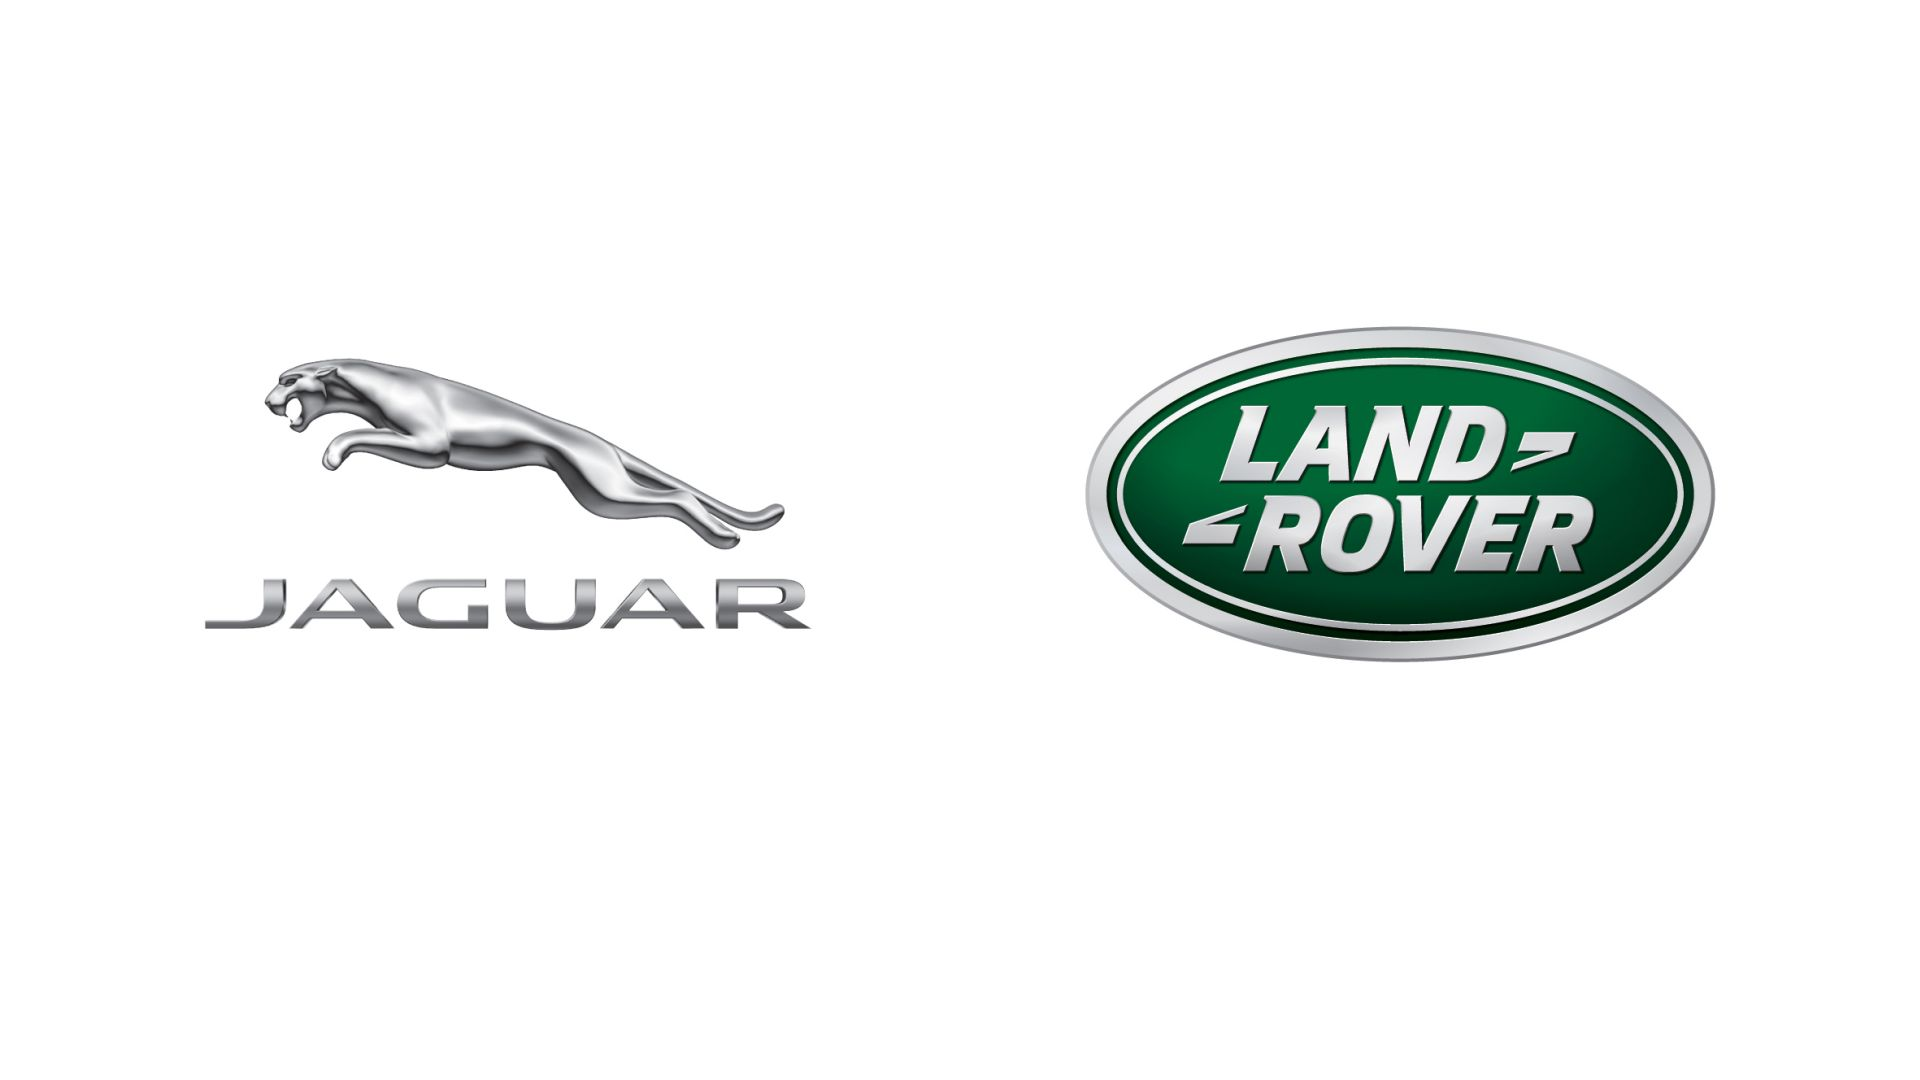 Jaguar Land Rover announces Technical Engineering Office in Hungary